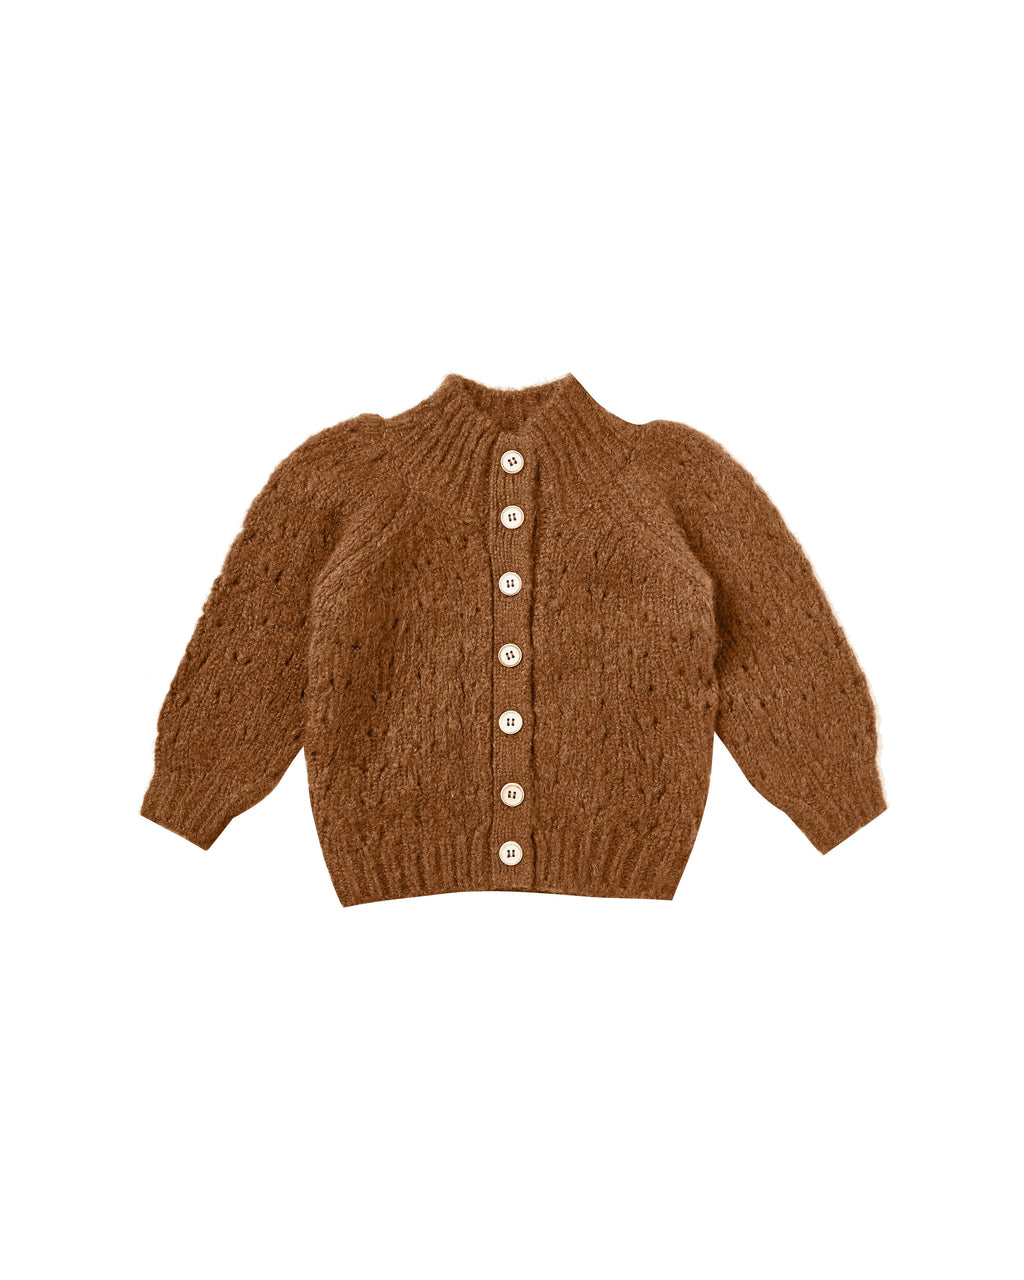 Rylee and Cru AW20- Tulip Sweater Pointelle Knit- Cinnamon